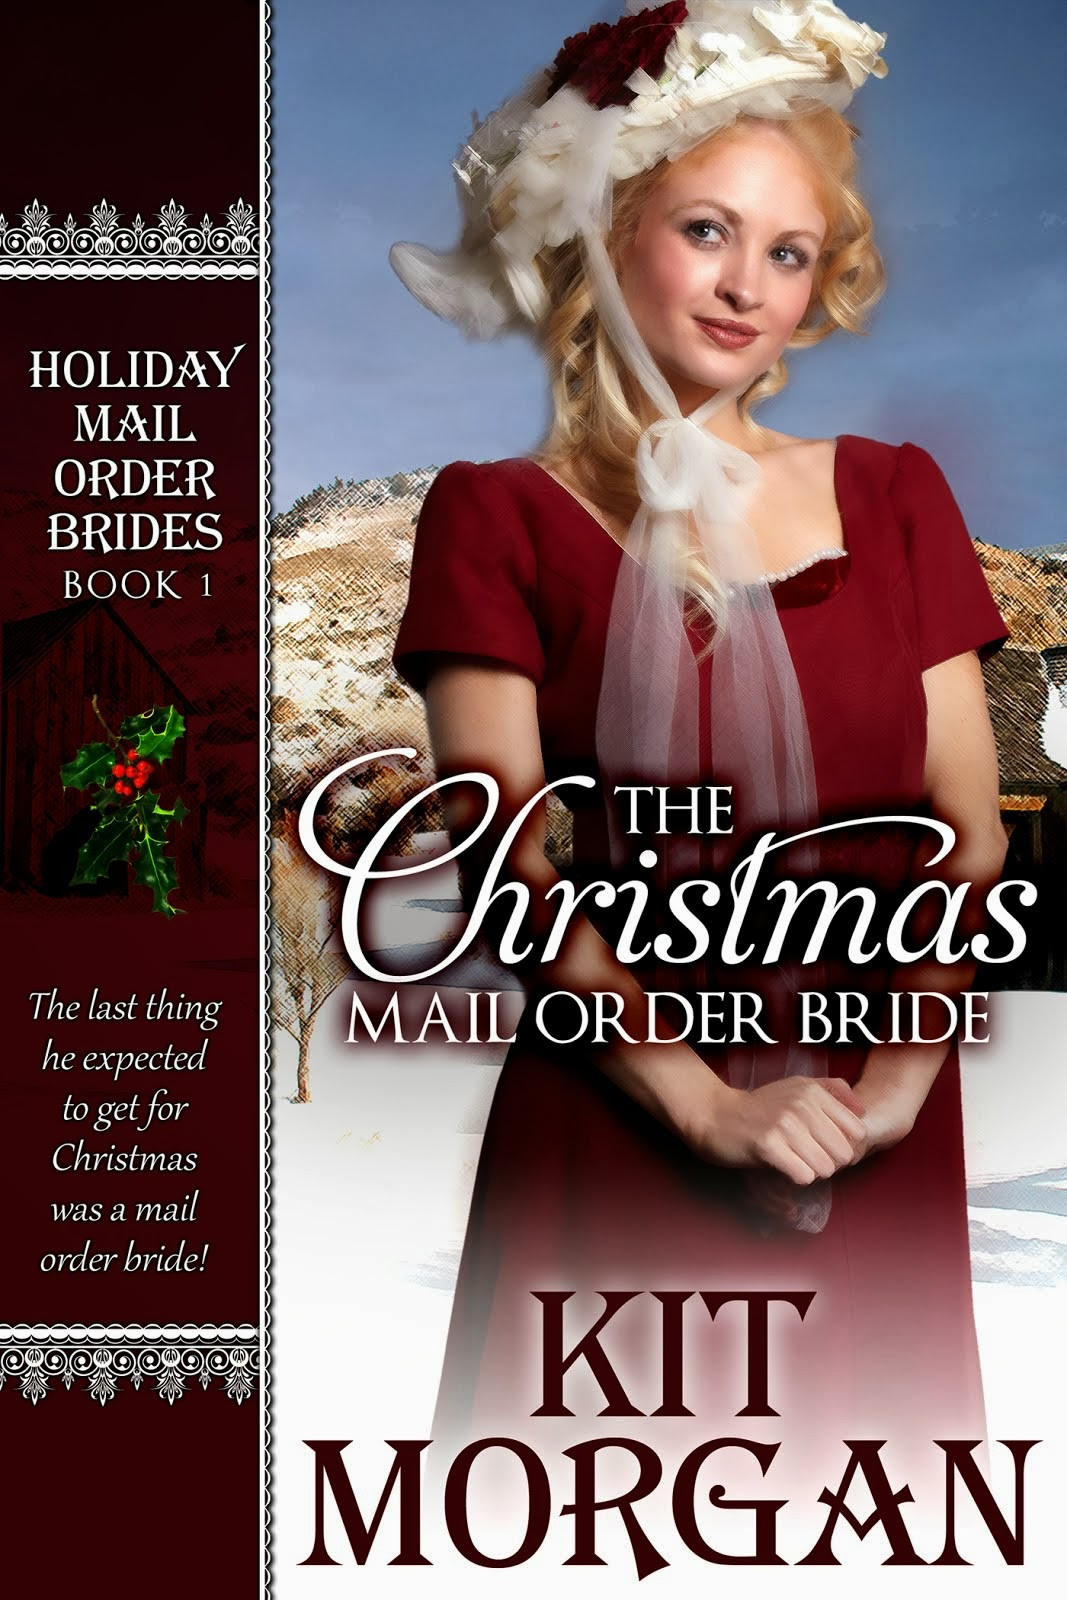 THE HOLIDAY MAIL ORDER BRIDE SERIES!